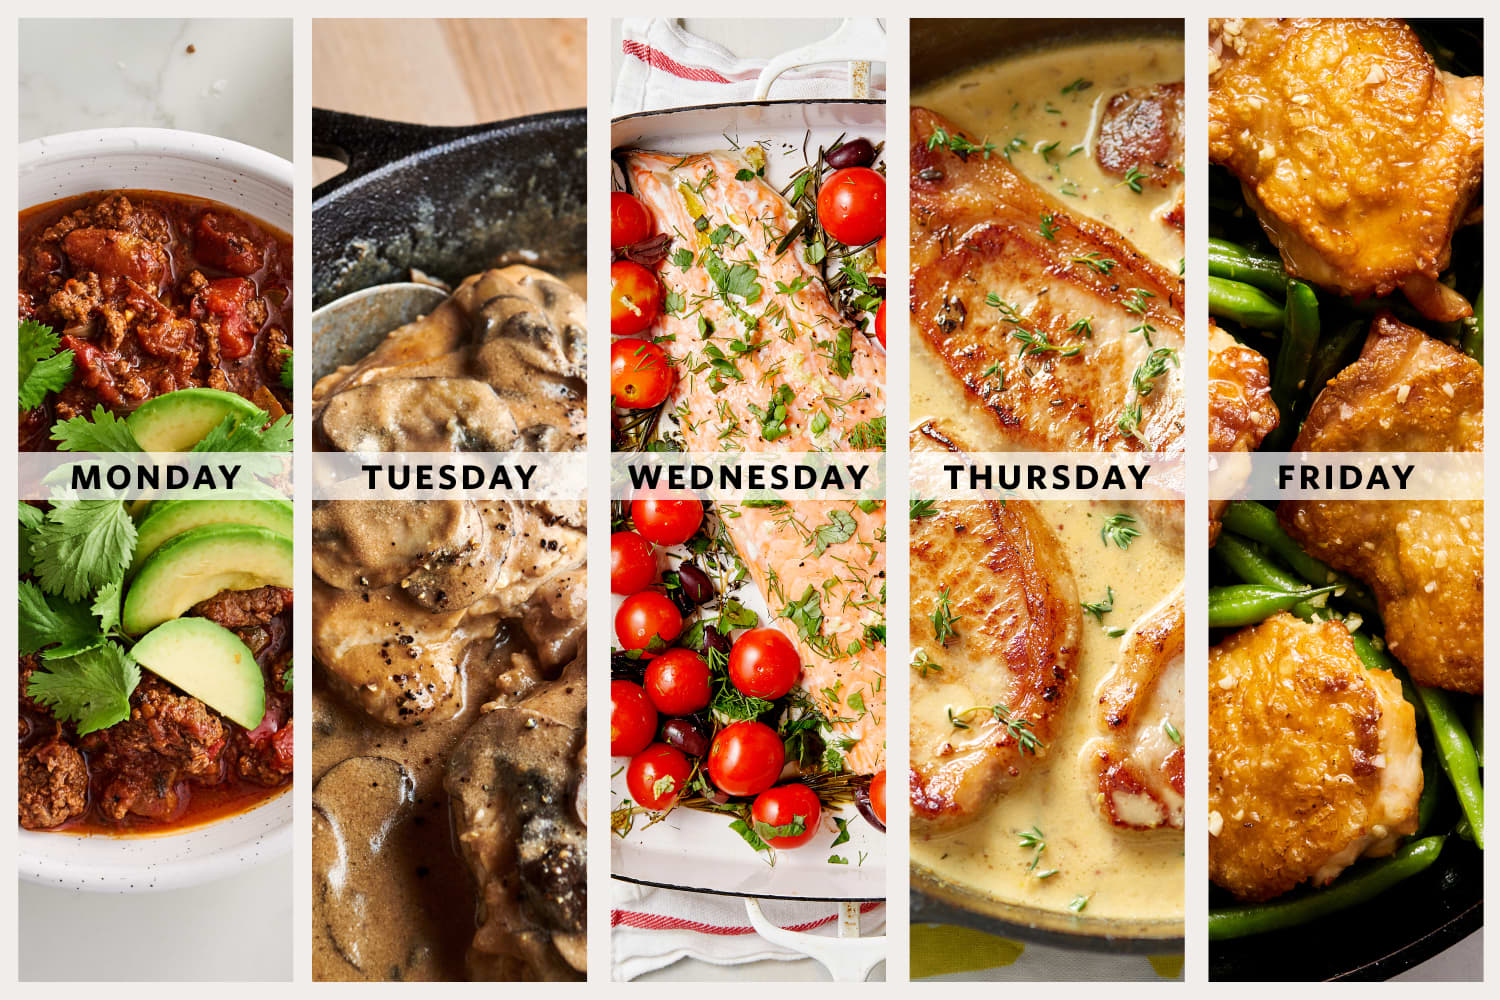 A Week of Easy Low-Carb, High-Protein Dinners